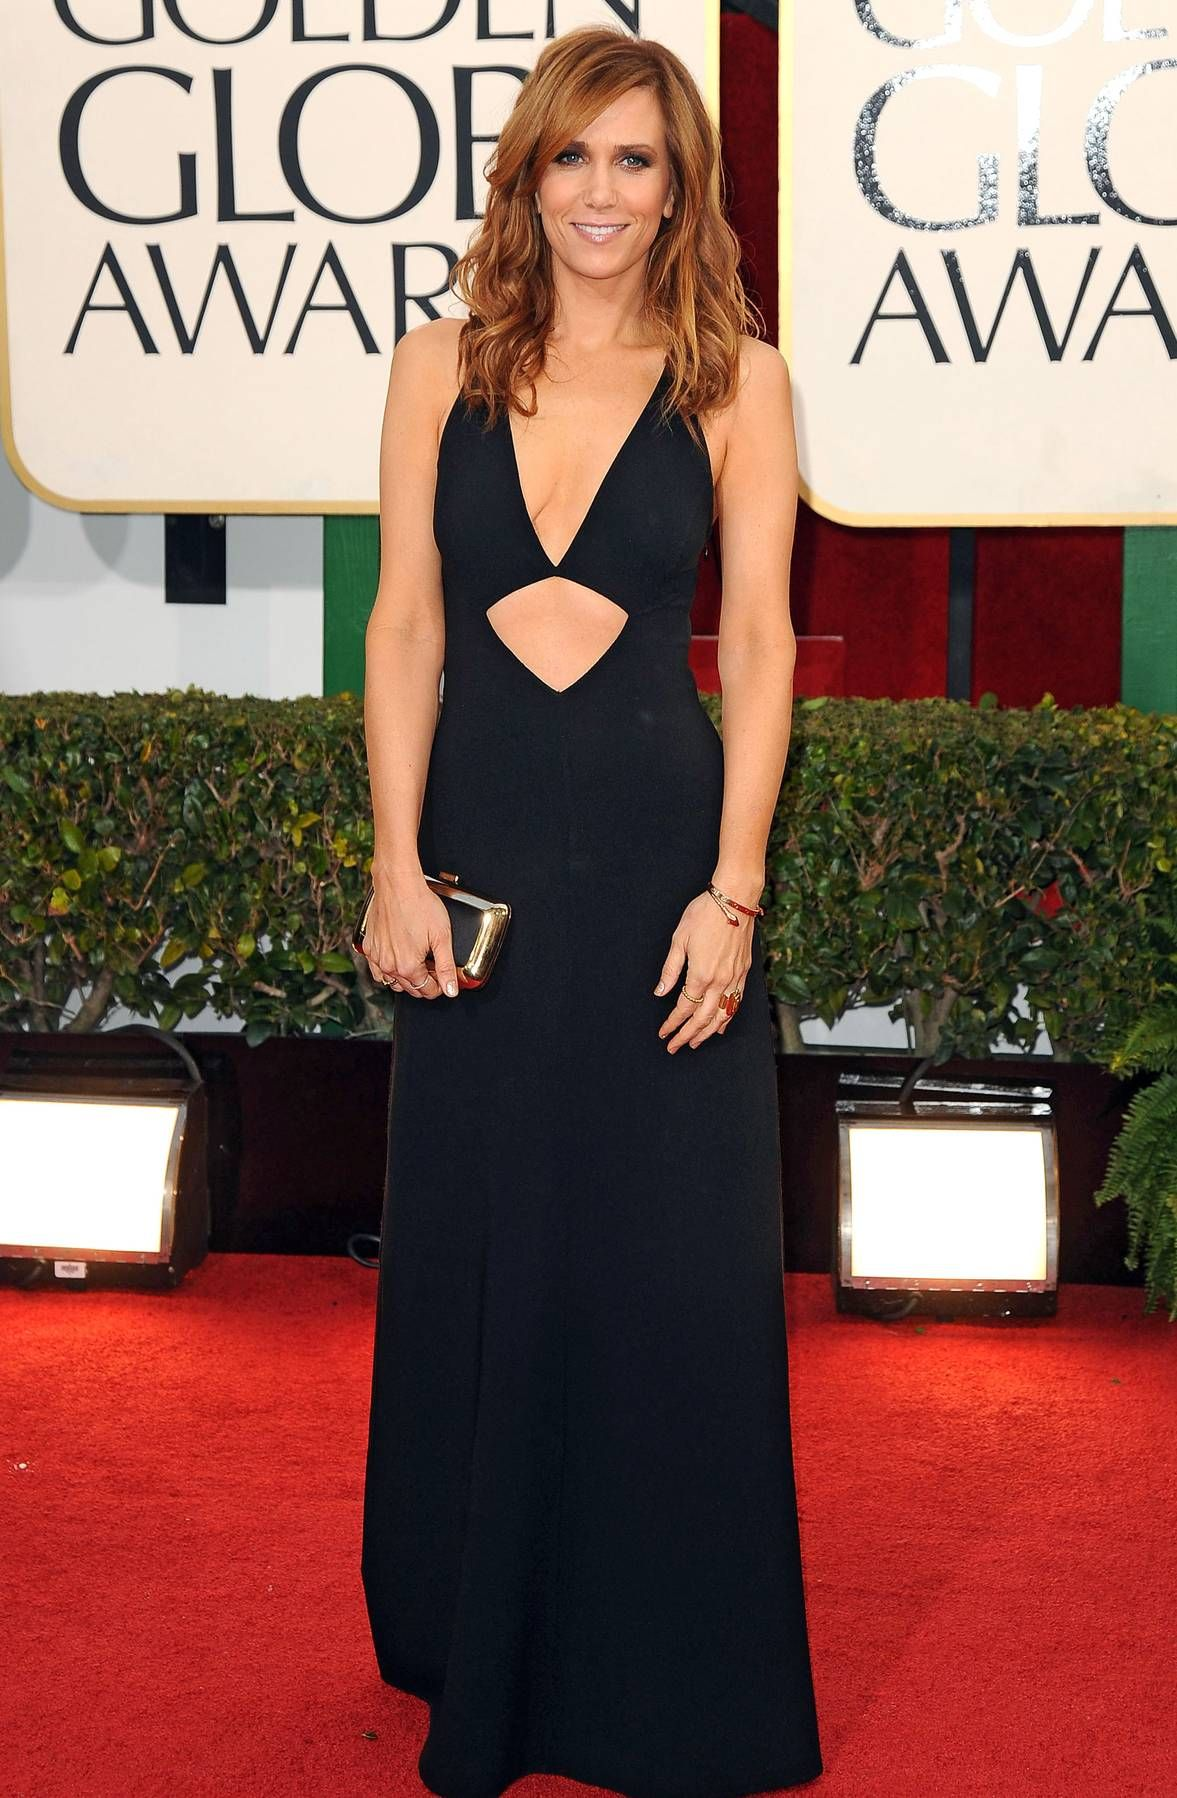 See all the red carpet looks from the golden globes golden